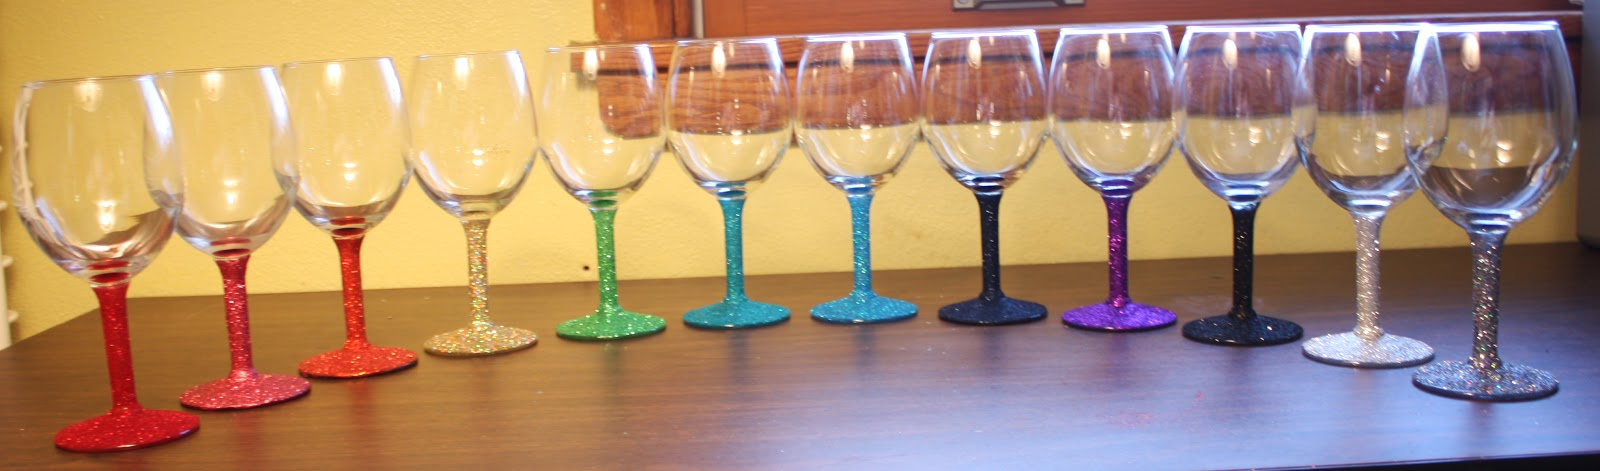 Artglitterblog celebrate in style with art glitter How to make wine glasses sparkle